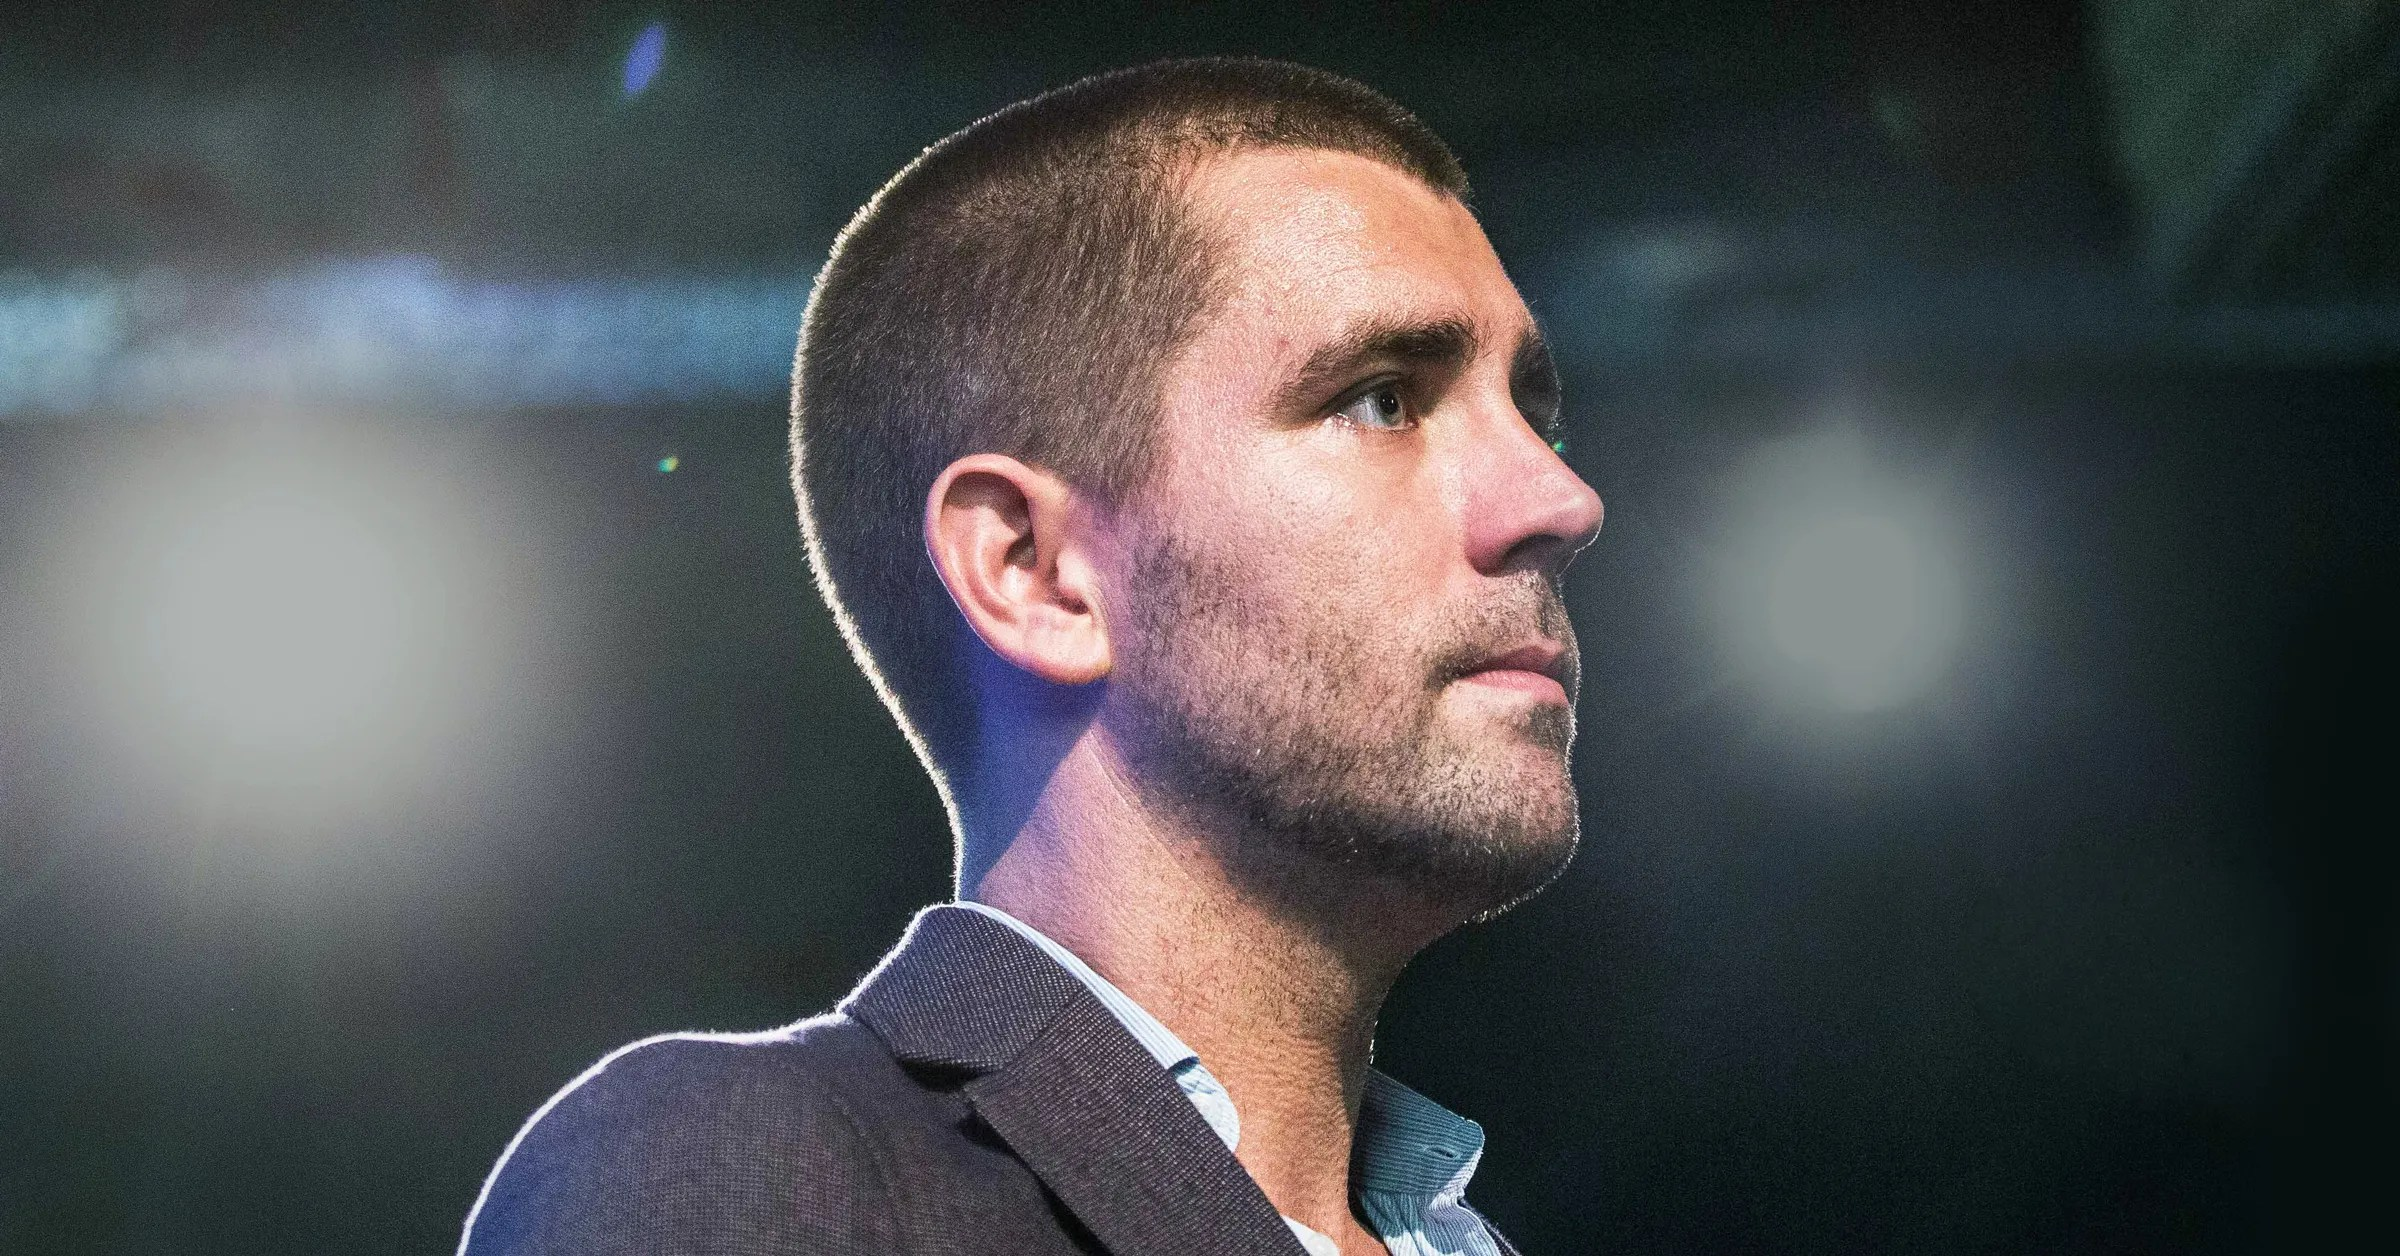 Cris-Cox-604578892 Facebook's Head of Product, Chris Cox, Says Goodbye